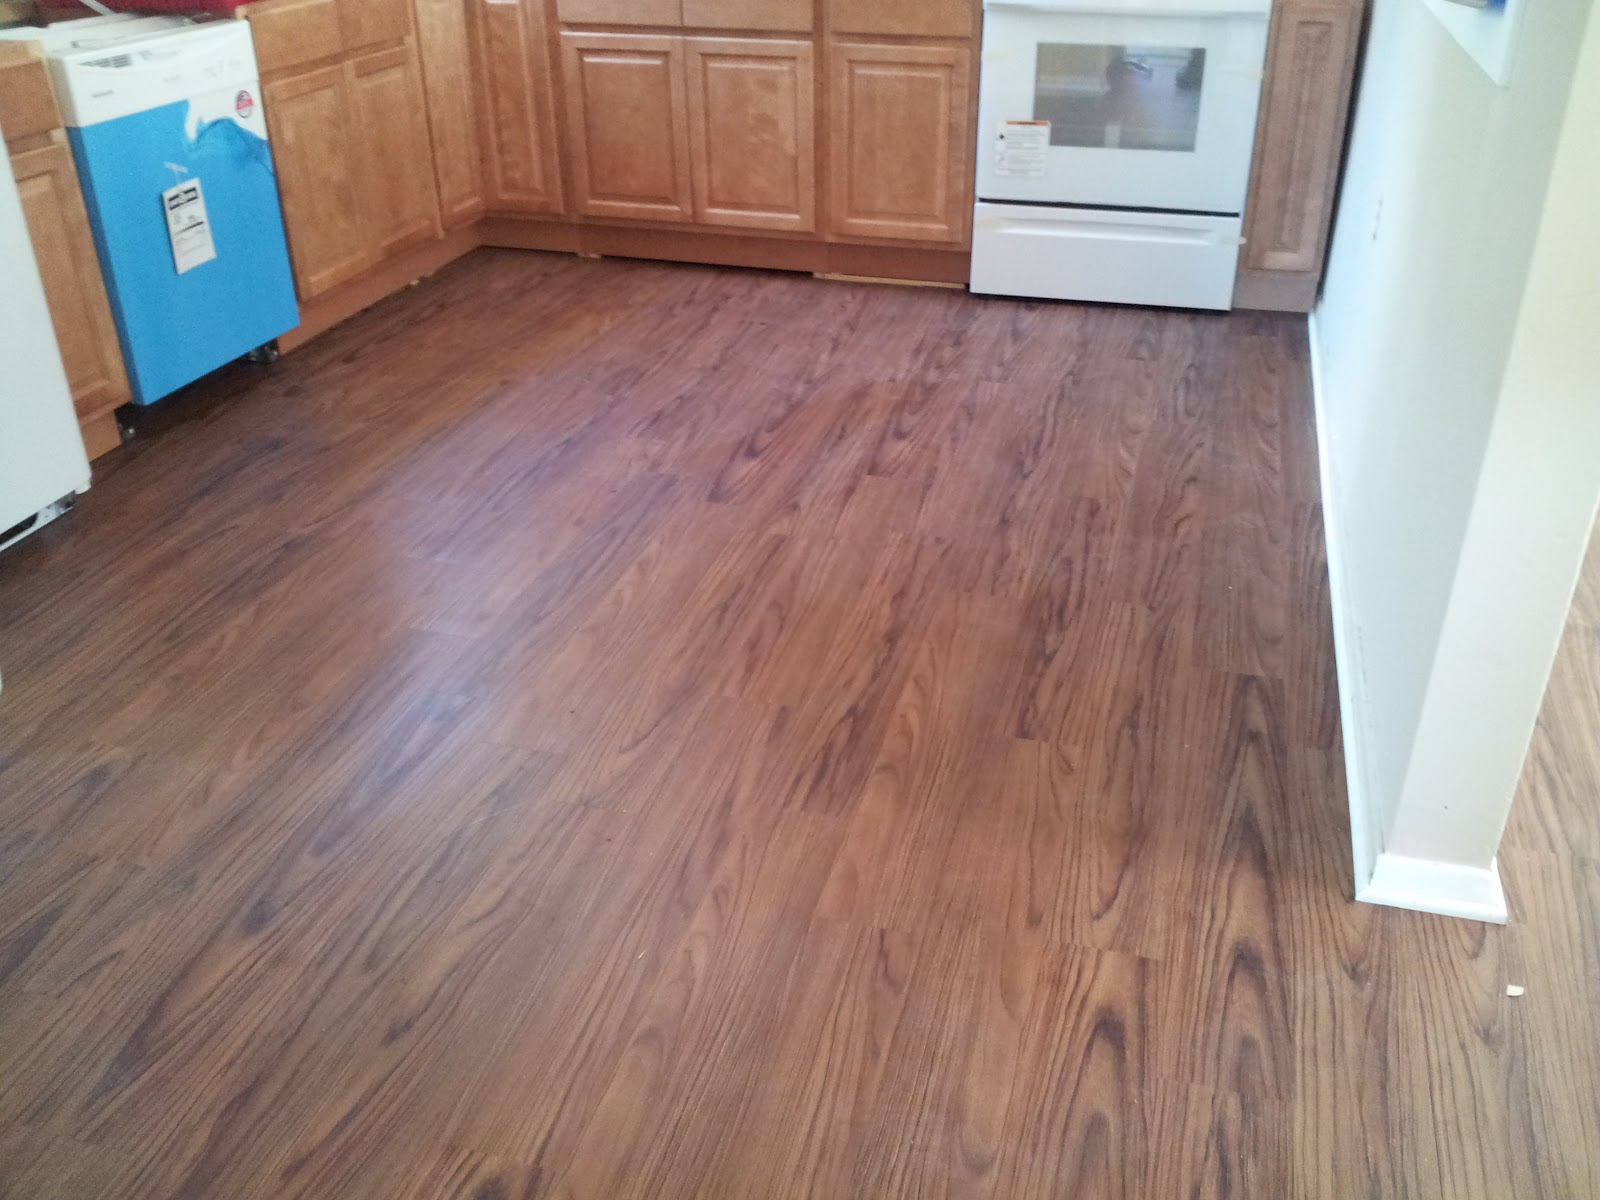 Vinyl flooring that looks like wood ask home design for Linoleum flooring wood look